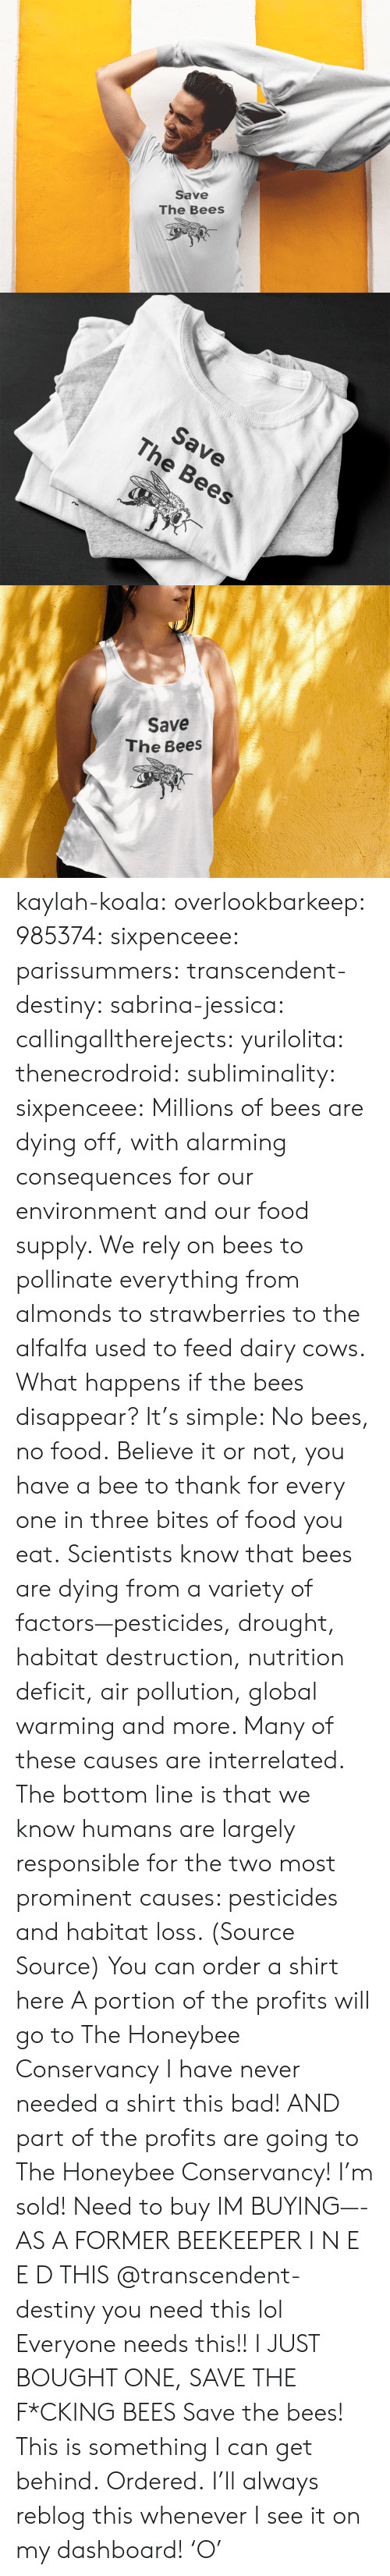 agriculture: Save  The Bees   Save  The Bees   Save  The Bees kaylah-koala:  overlookbarkeep: 985374:  sixpenceee:  parissummers:  transcendent-destiny:  sabrina-jessica:   callingalltherejects:  yurilolita:  thenecrodroid:  subliminality:   sixpenceee:   Millions of bees are dying off, with alarming consequences for our environment and our food supply. We rely on bees to pollinate everything from almonds to strawberries to the alfalfa used to feed dairy cows. What happens if the bees disappear? It's simple: No bees, no food. Believe it or not, you have a bee to thank for every one in three bites of food you eat. Scientists know that bees are dying from a variety of factors—pesticides, drought, habitat destruction, nutrition deficit, air pollution, global warming and more. Many of these causes are interrelated. The bottom line is that we know humans are largely responsible for the two most prominent causes: pesticides and habitat loss. (Source  Source) You can order a shirt here A portion of the profits will go to The Honeybee Conservancy   I have never needed a shirt this bad! AND part of the profits are going to The Honeybee Conservancy! I'm sold!   Need to buy   IM BUYING—-   AS A FORMER BEEKEEPER I N E E D THIS   @transcendent-destiny you need this lol  Everyone needs this!!   I JUST BOUGHT ONE, SAVE THE F*CKING BEES  Save the bees!   This is something I can get behind.   Ordered.   I'll always reblog this whenever I see it on my dashboard! 'O'